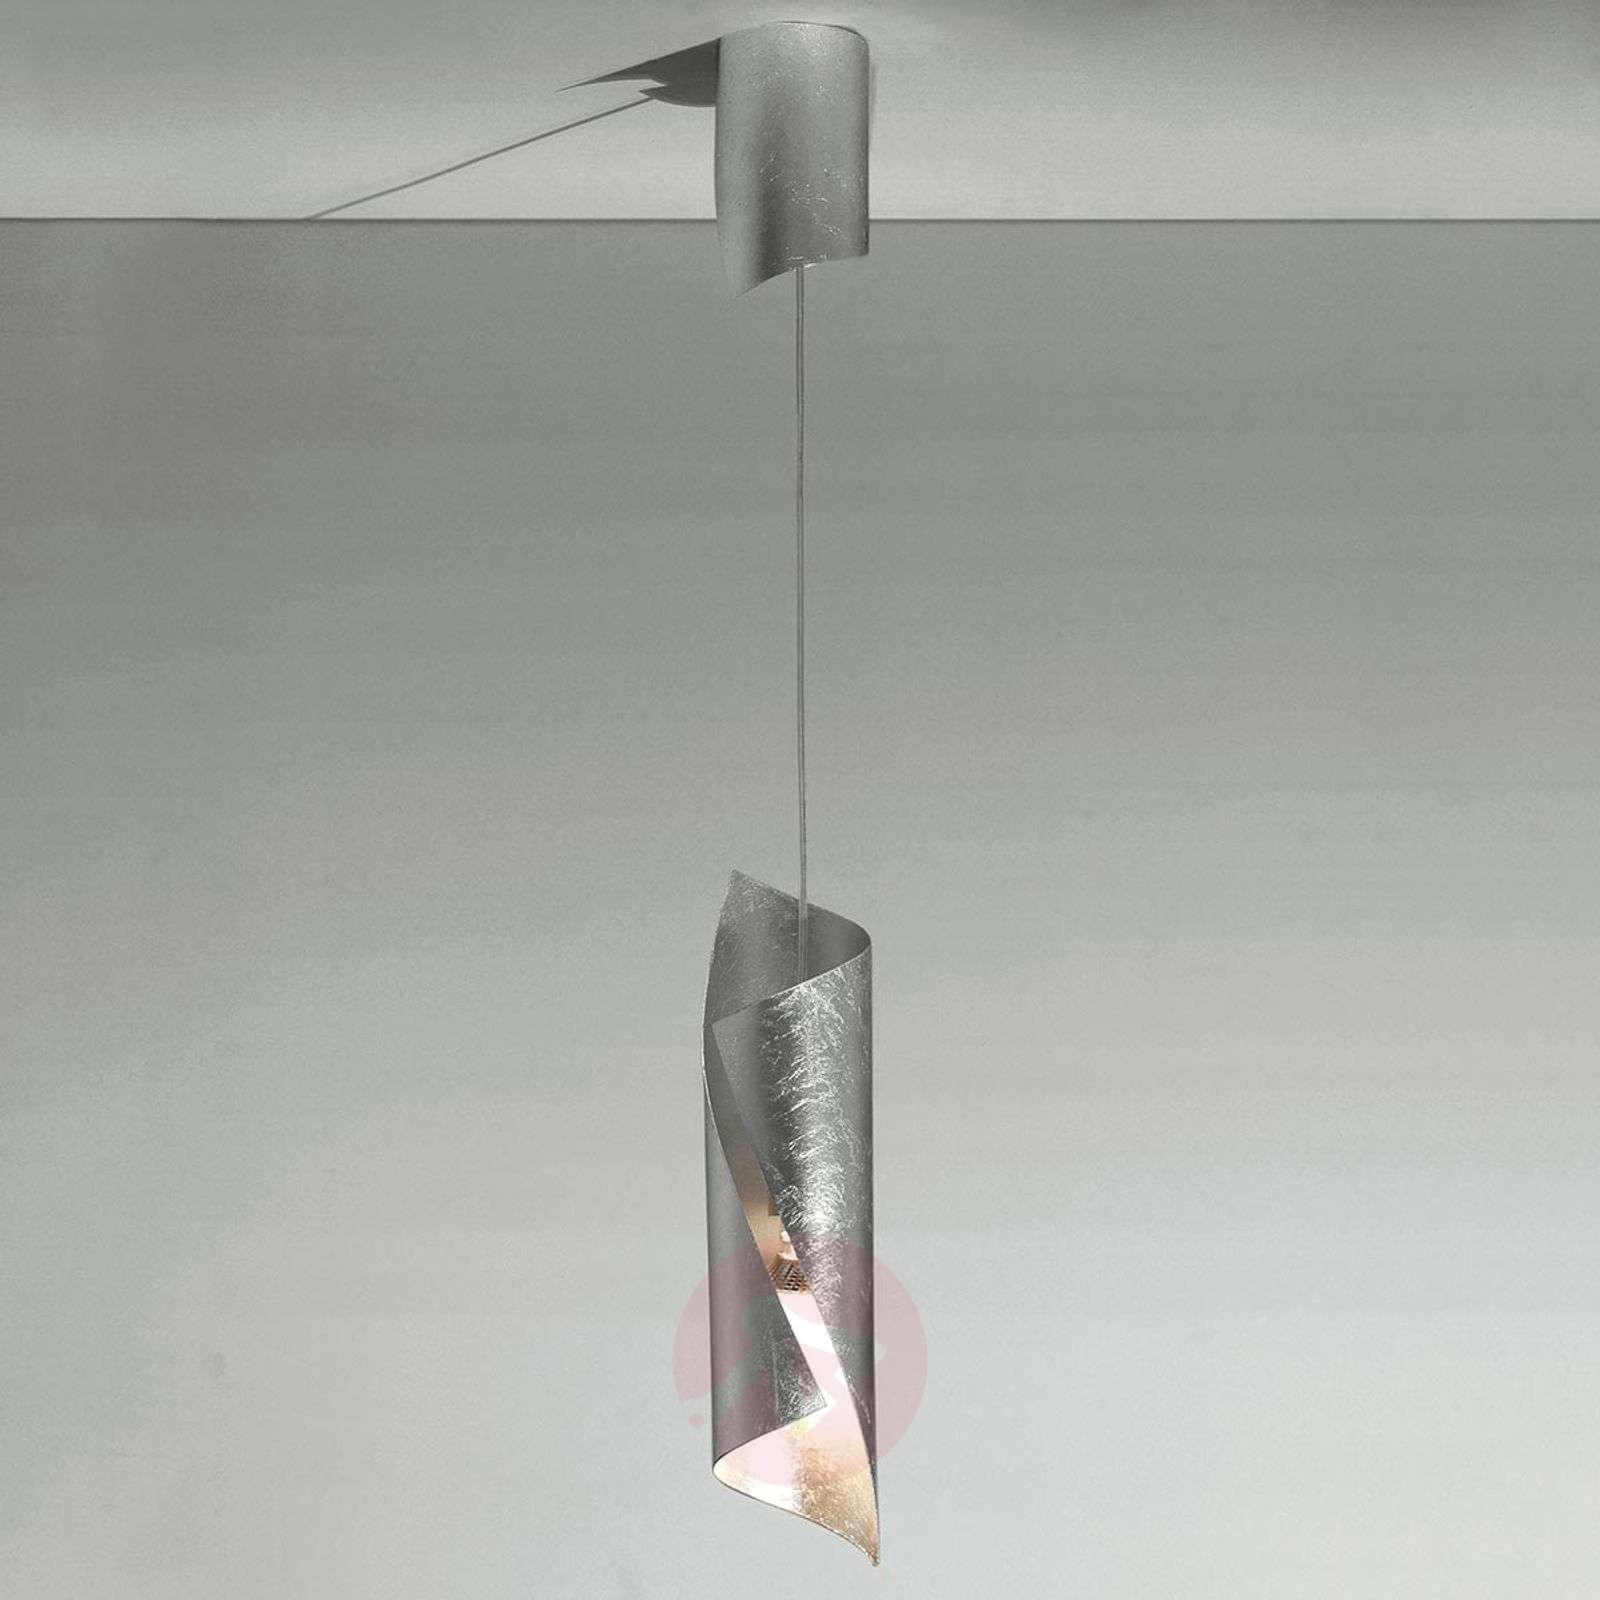 Knikerboker Hué hanging light in silver, one-bulb-5538030-01